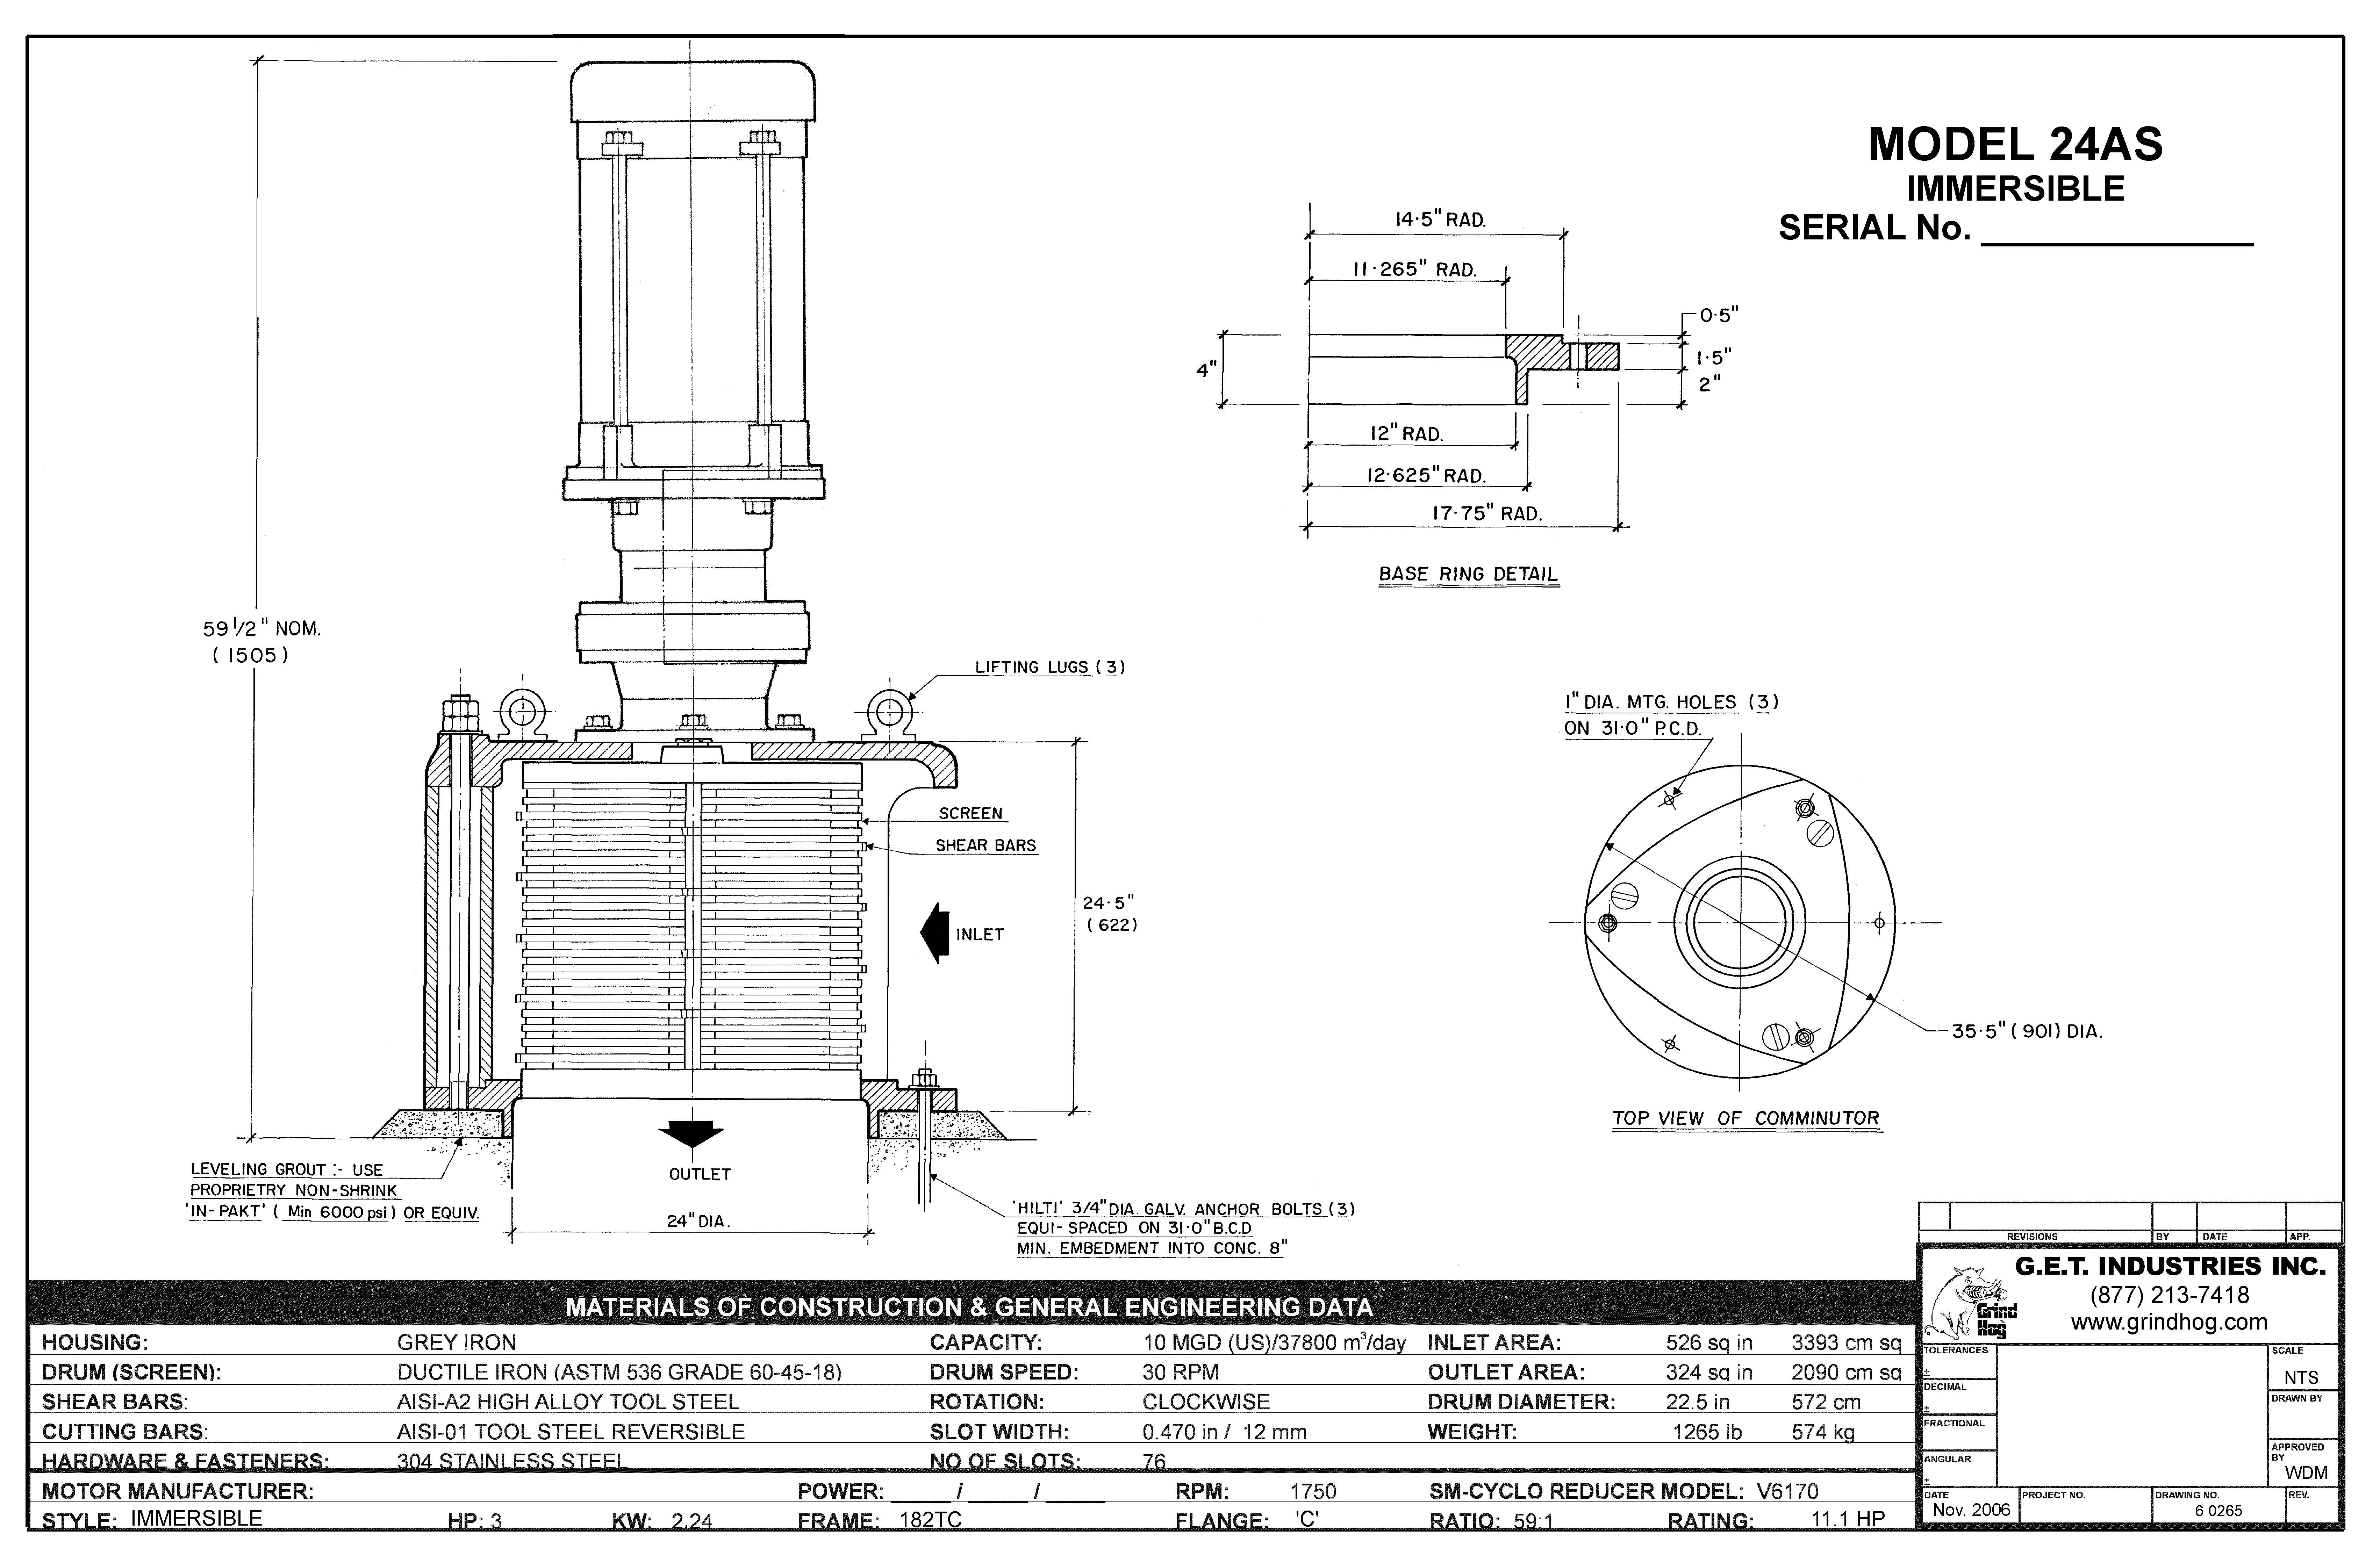 data drawing for Model 24AS